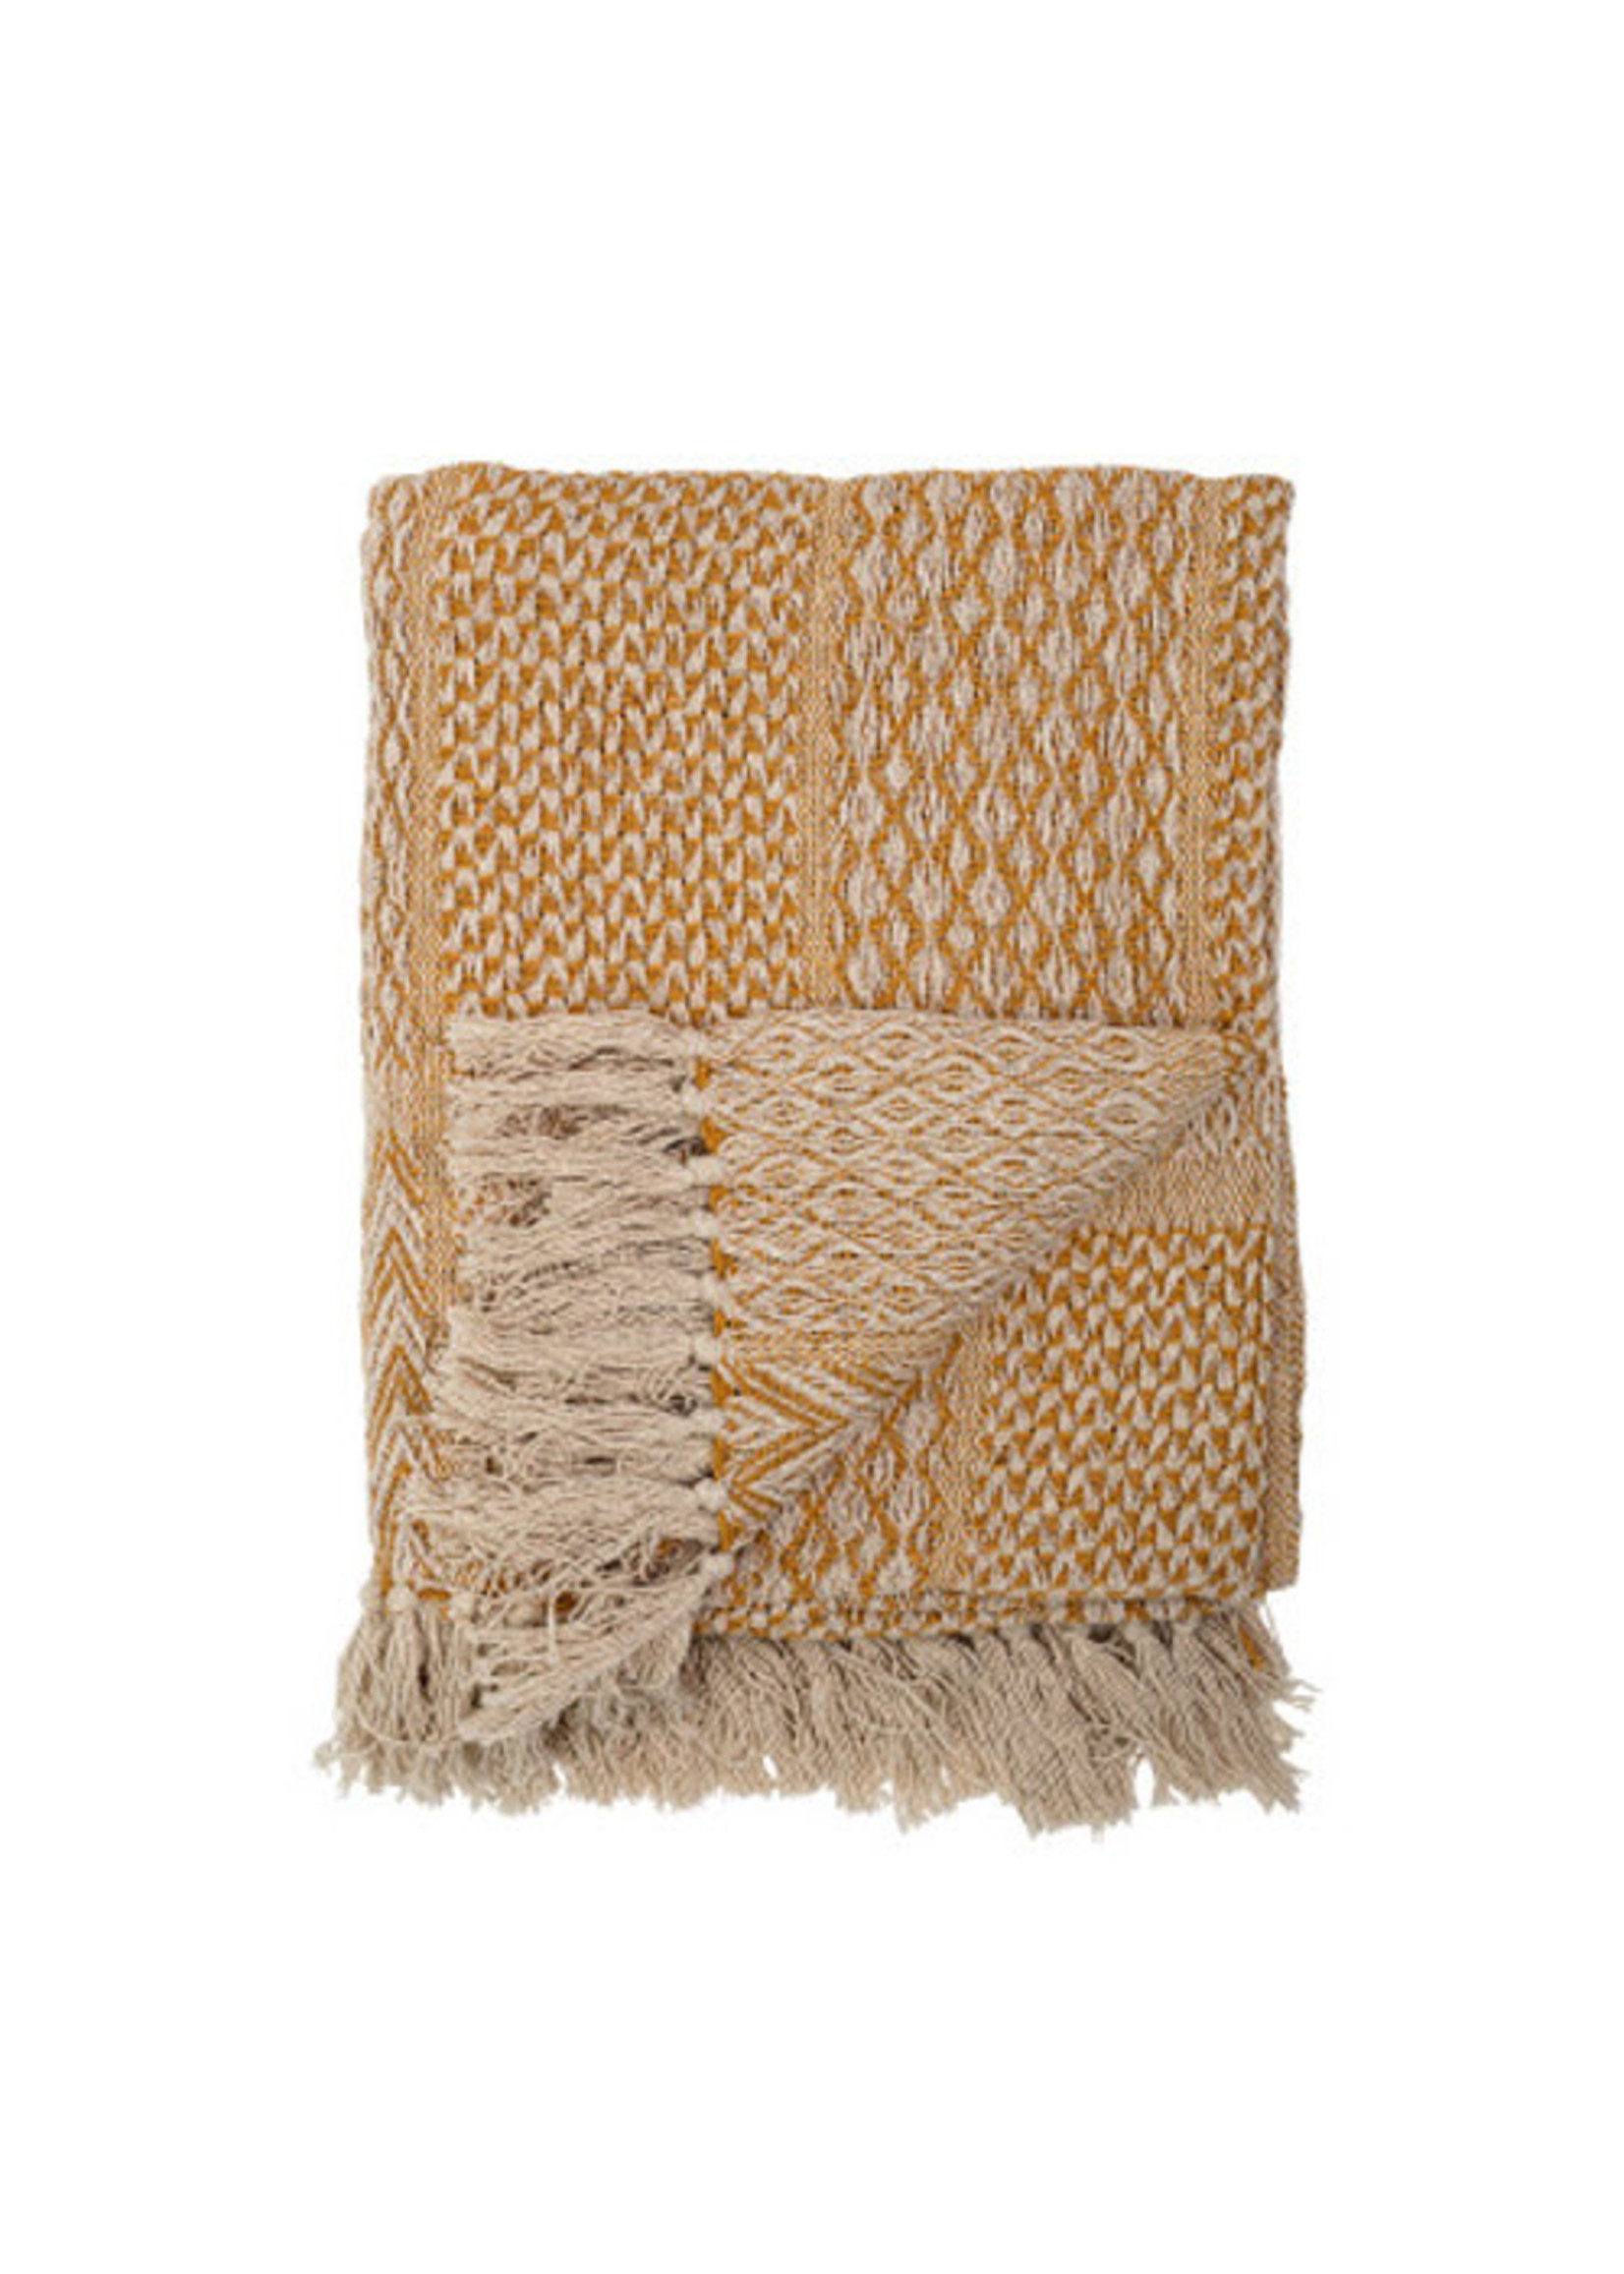 Woven Recycled Cotton Blend Throw with Tassles